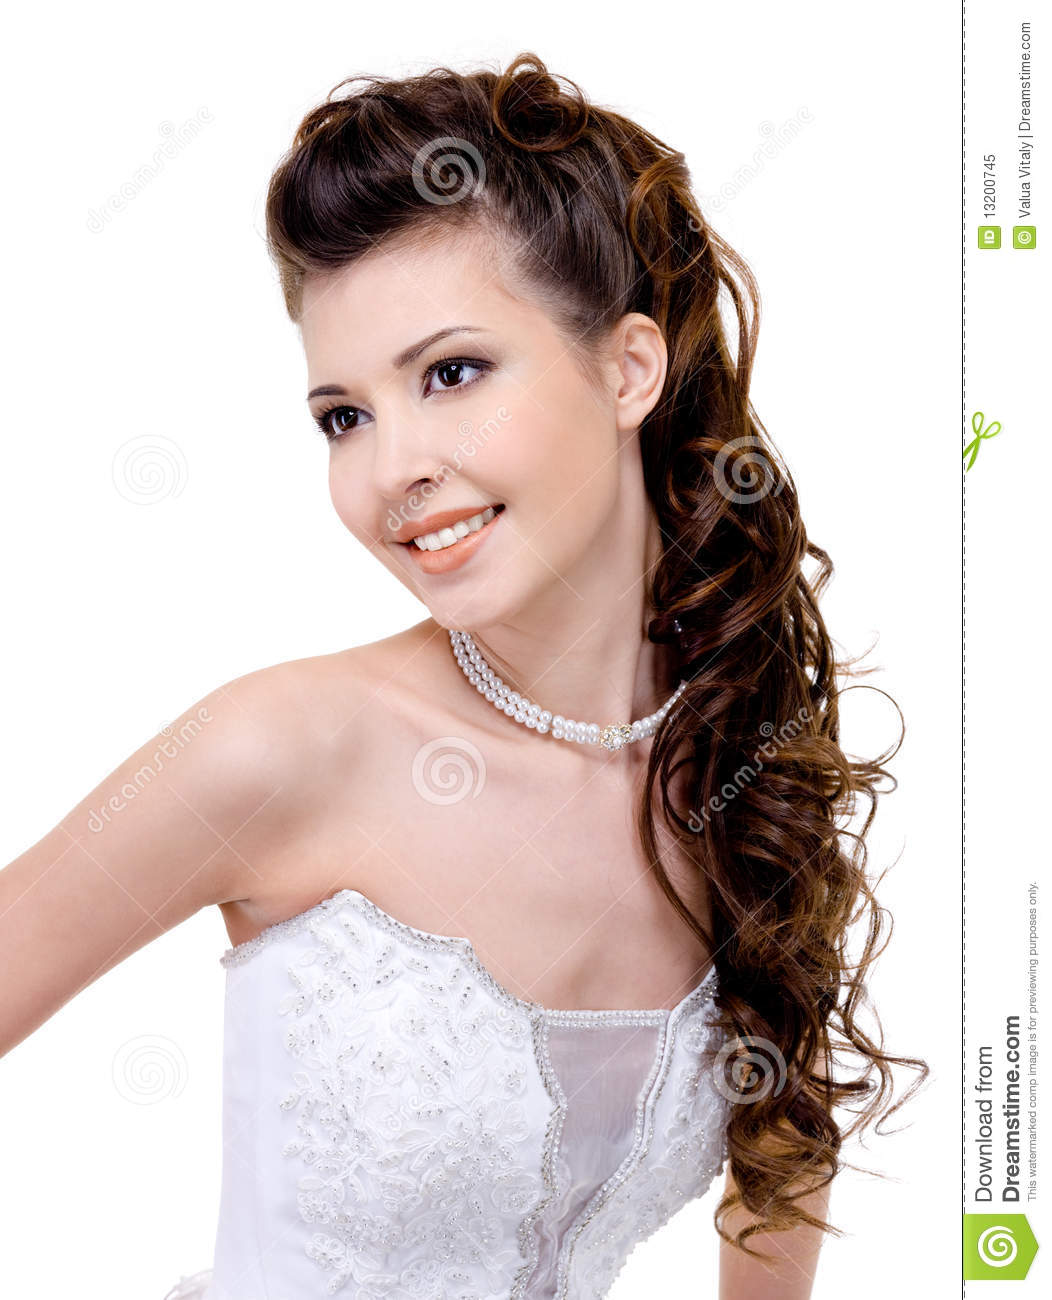 Smiling Bride With Curly Wedding Hairstyle Royalty Free